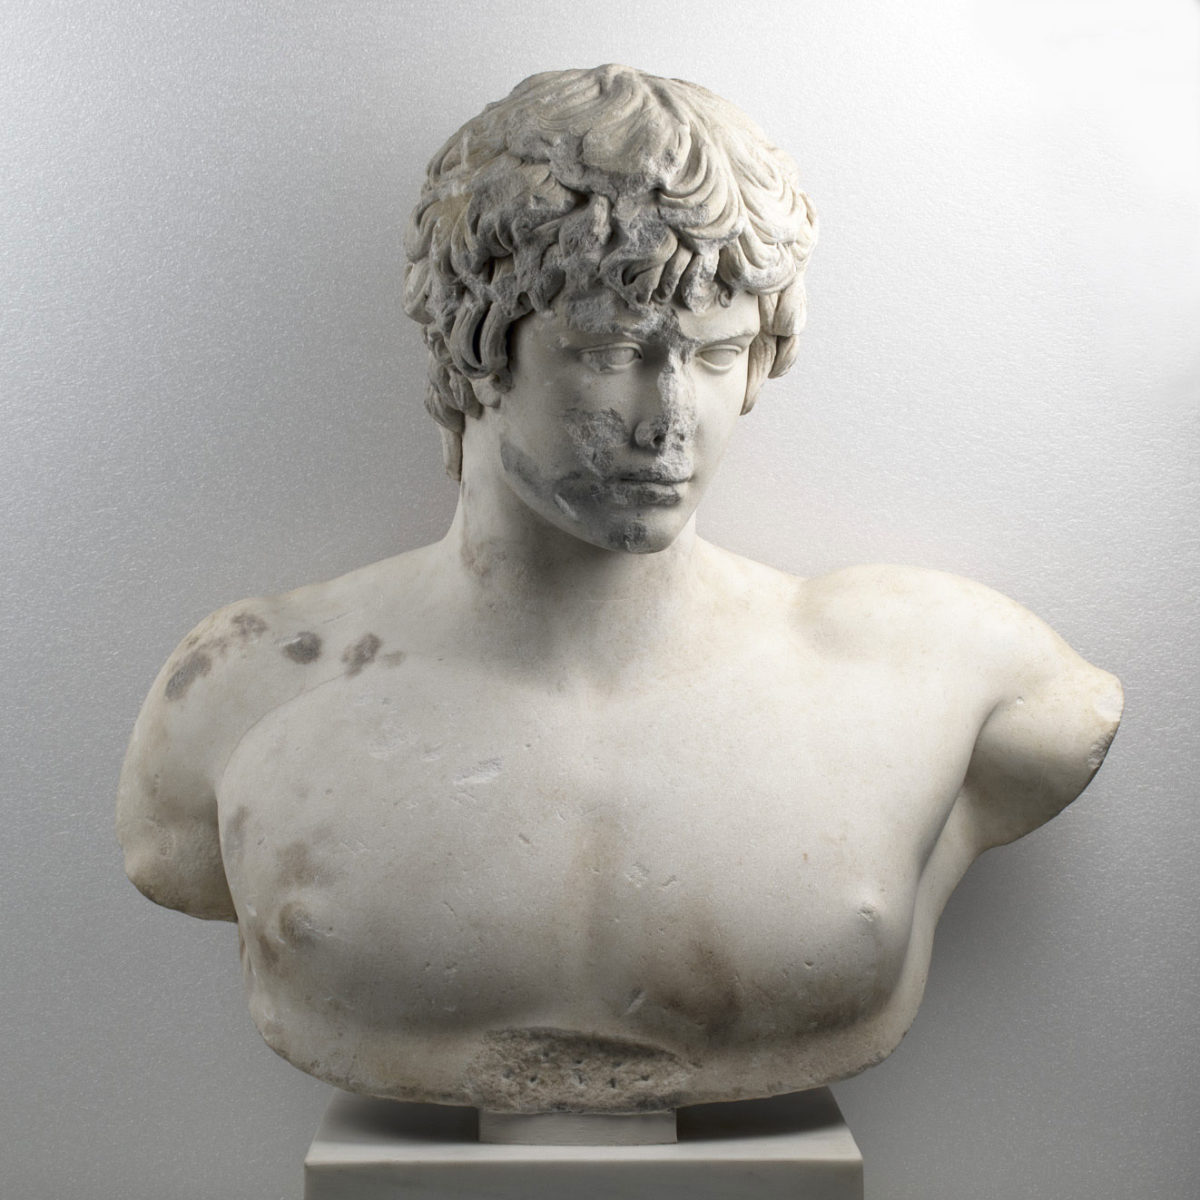 Nude bust with head of Antinous. Found in Patras in 1856. It dates from just before 130 AD. Exhibit number Γ 418 (Photographic Archive of the National Archaeological Museum)